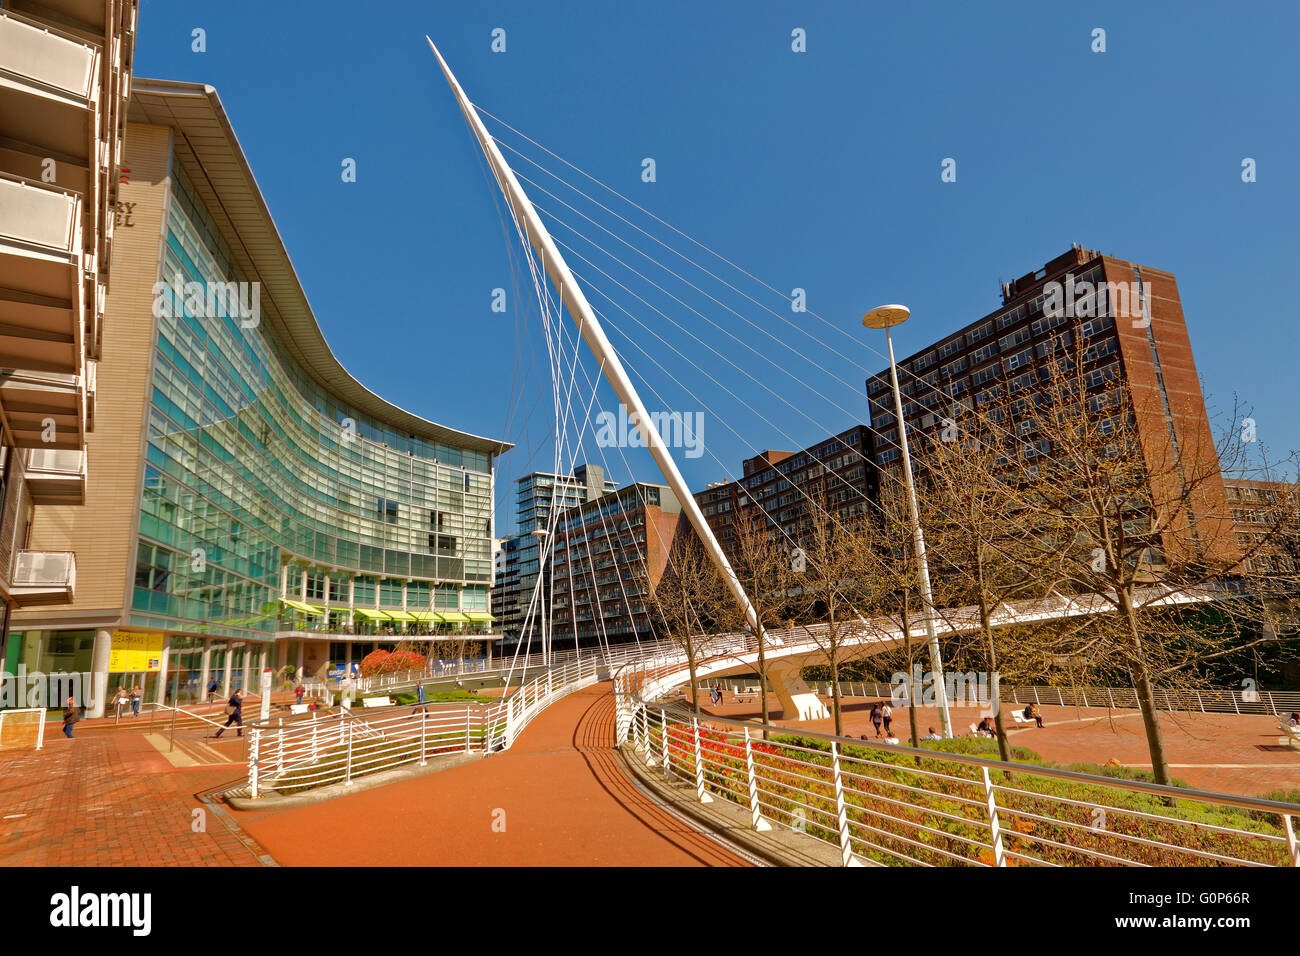 The Lowry Hotel and Trinity Bridge, Clermont Ferrand Square, City of Salford, Greater Manchester, England - Stock Image